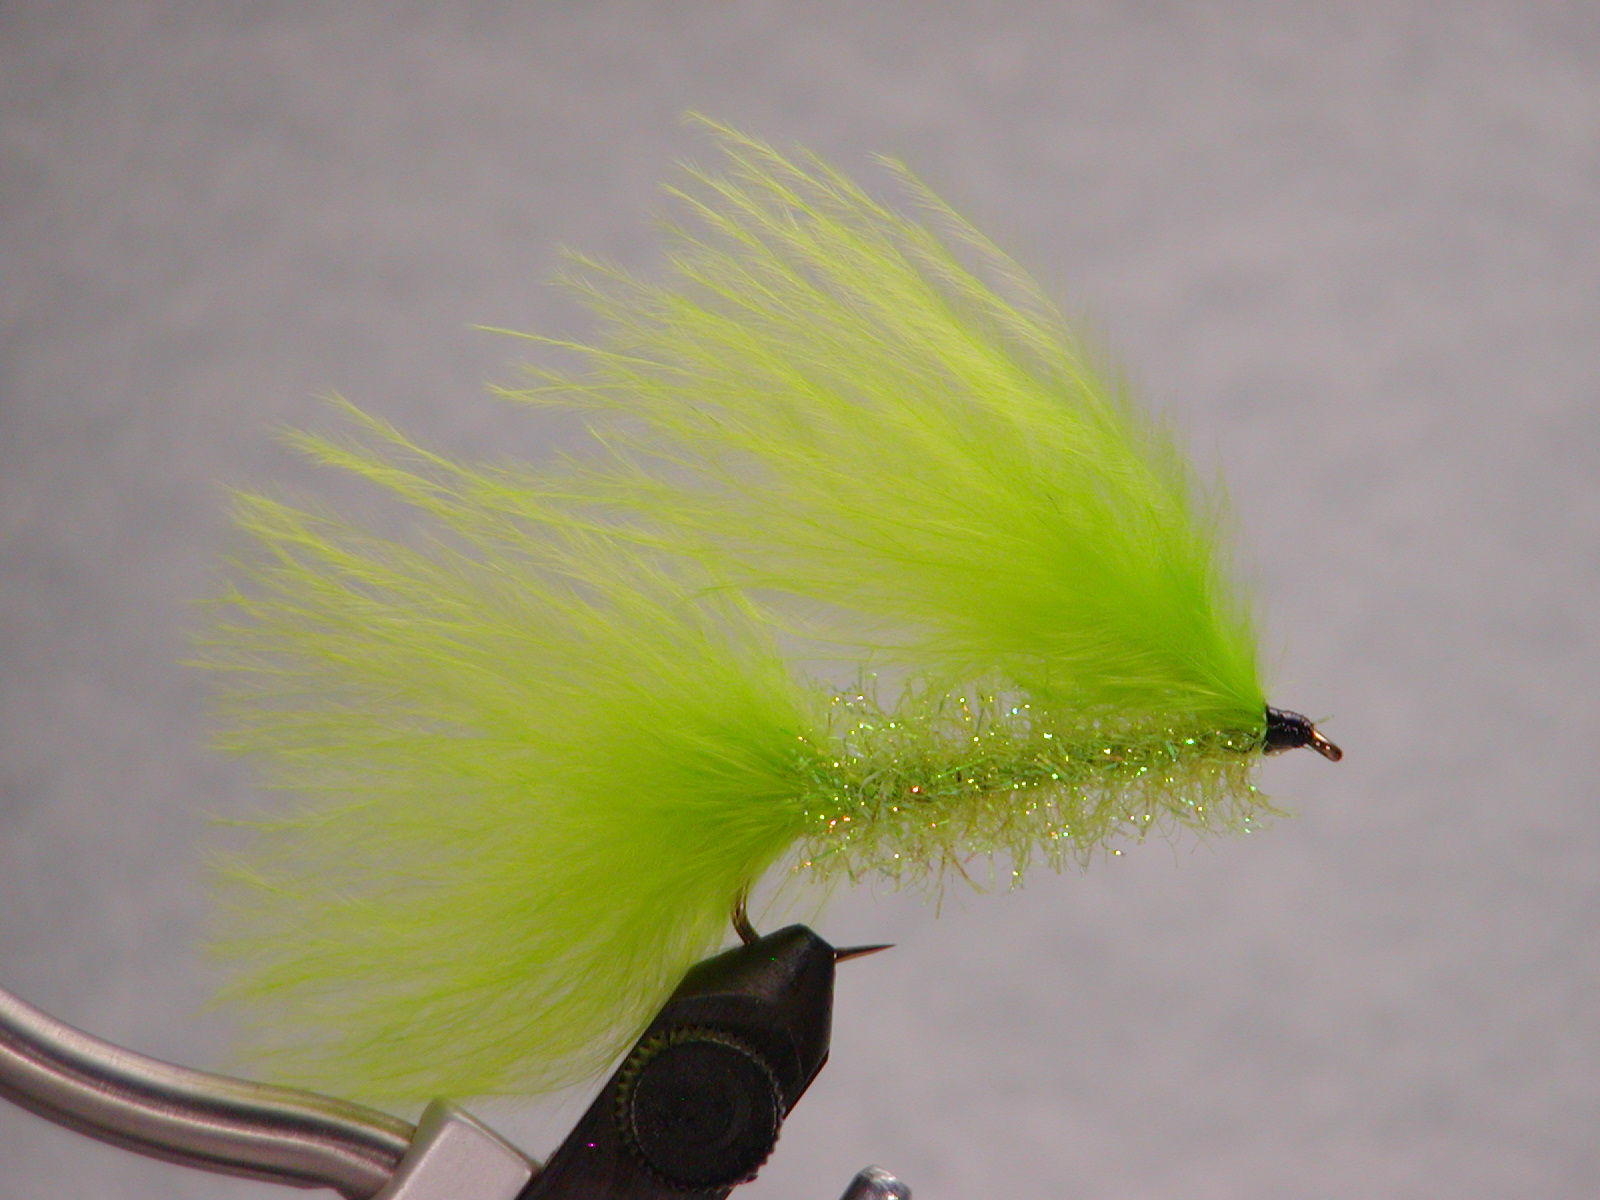 Chartreuse #4, Jay Fair Trolling Fly. $5.49, sold in pairs.